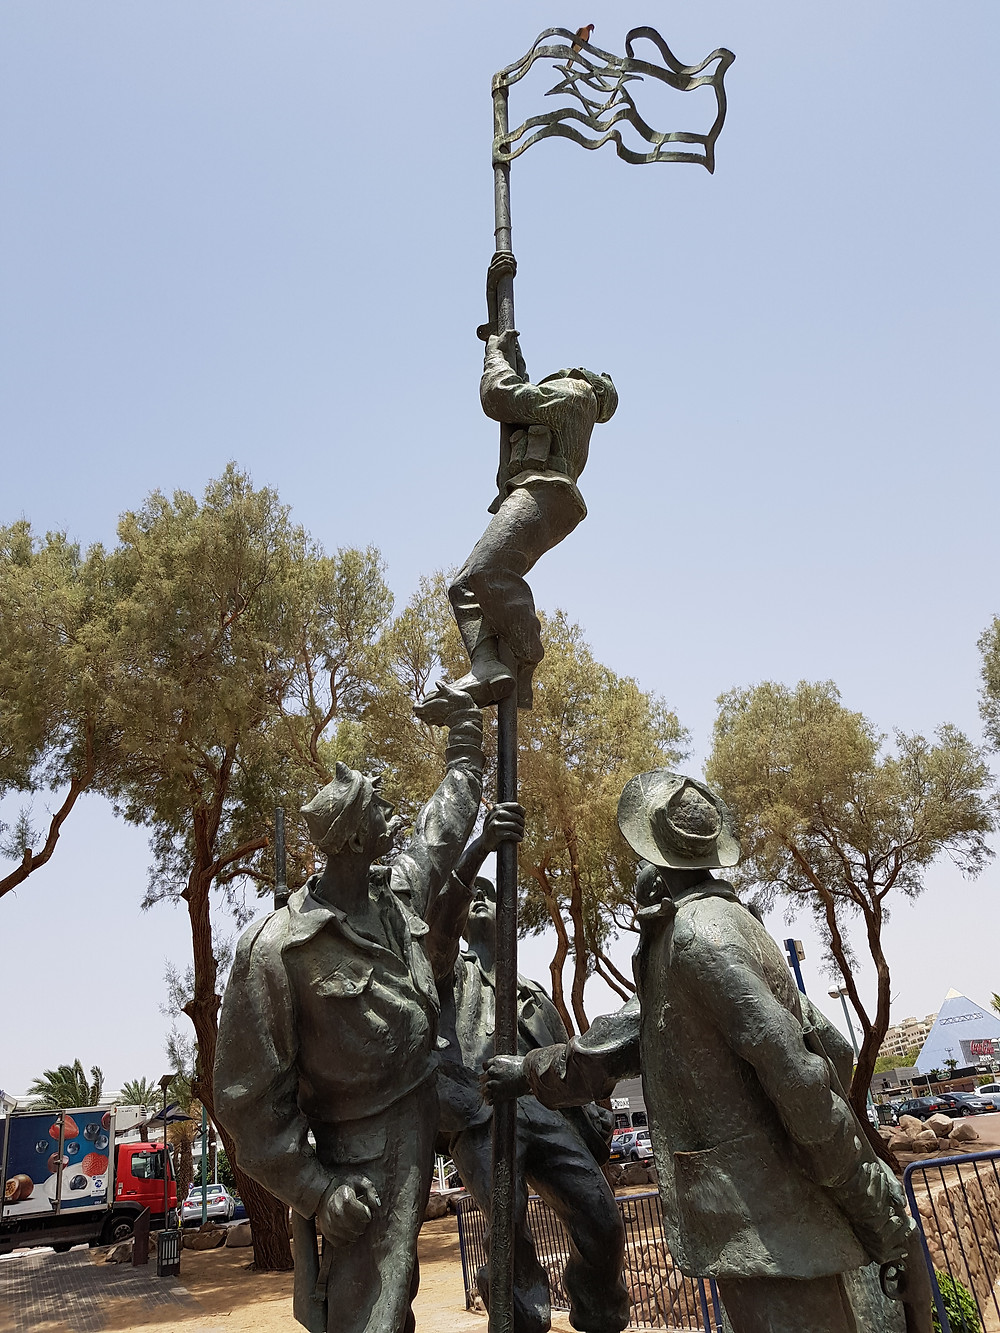 Commemorating the hoisting of the Israeli flag in March 1949